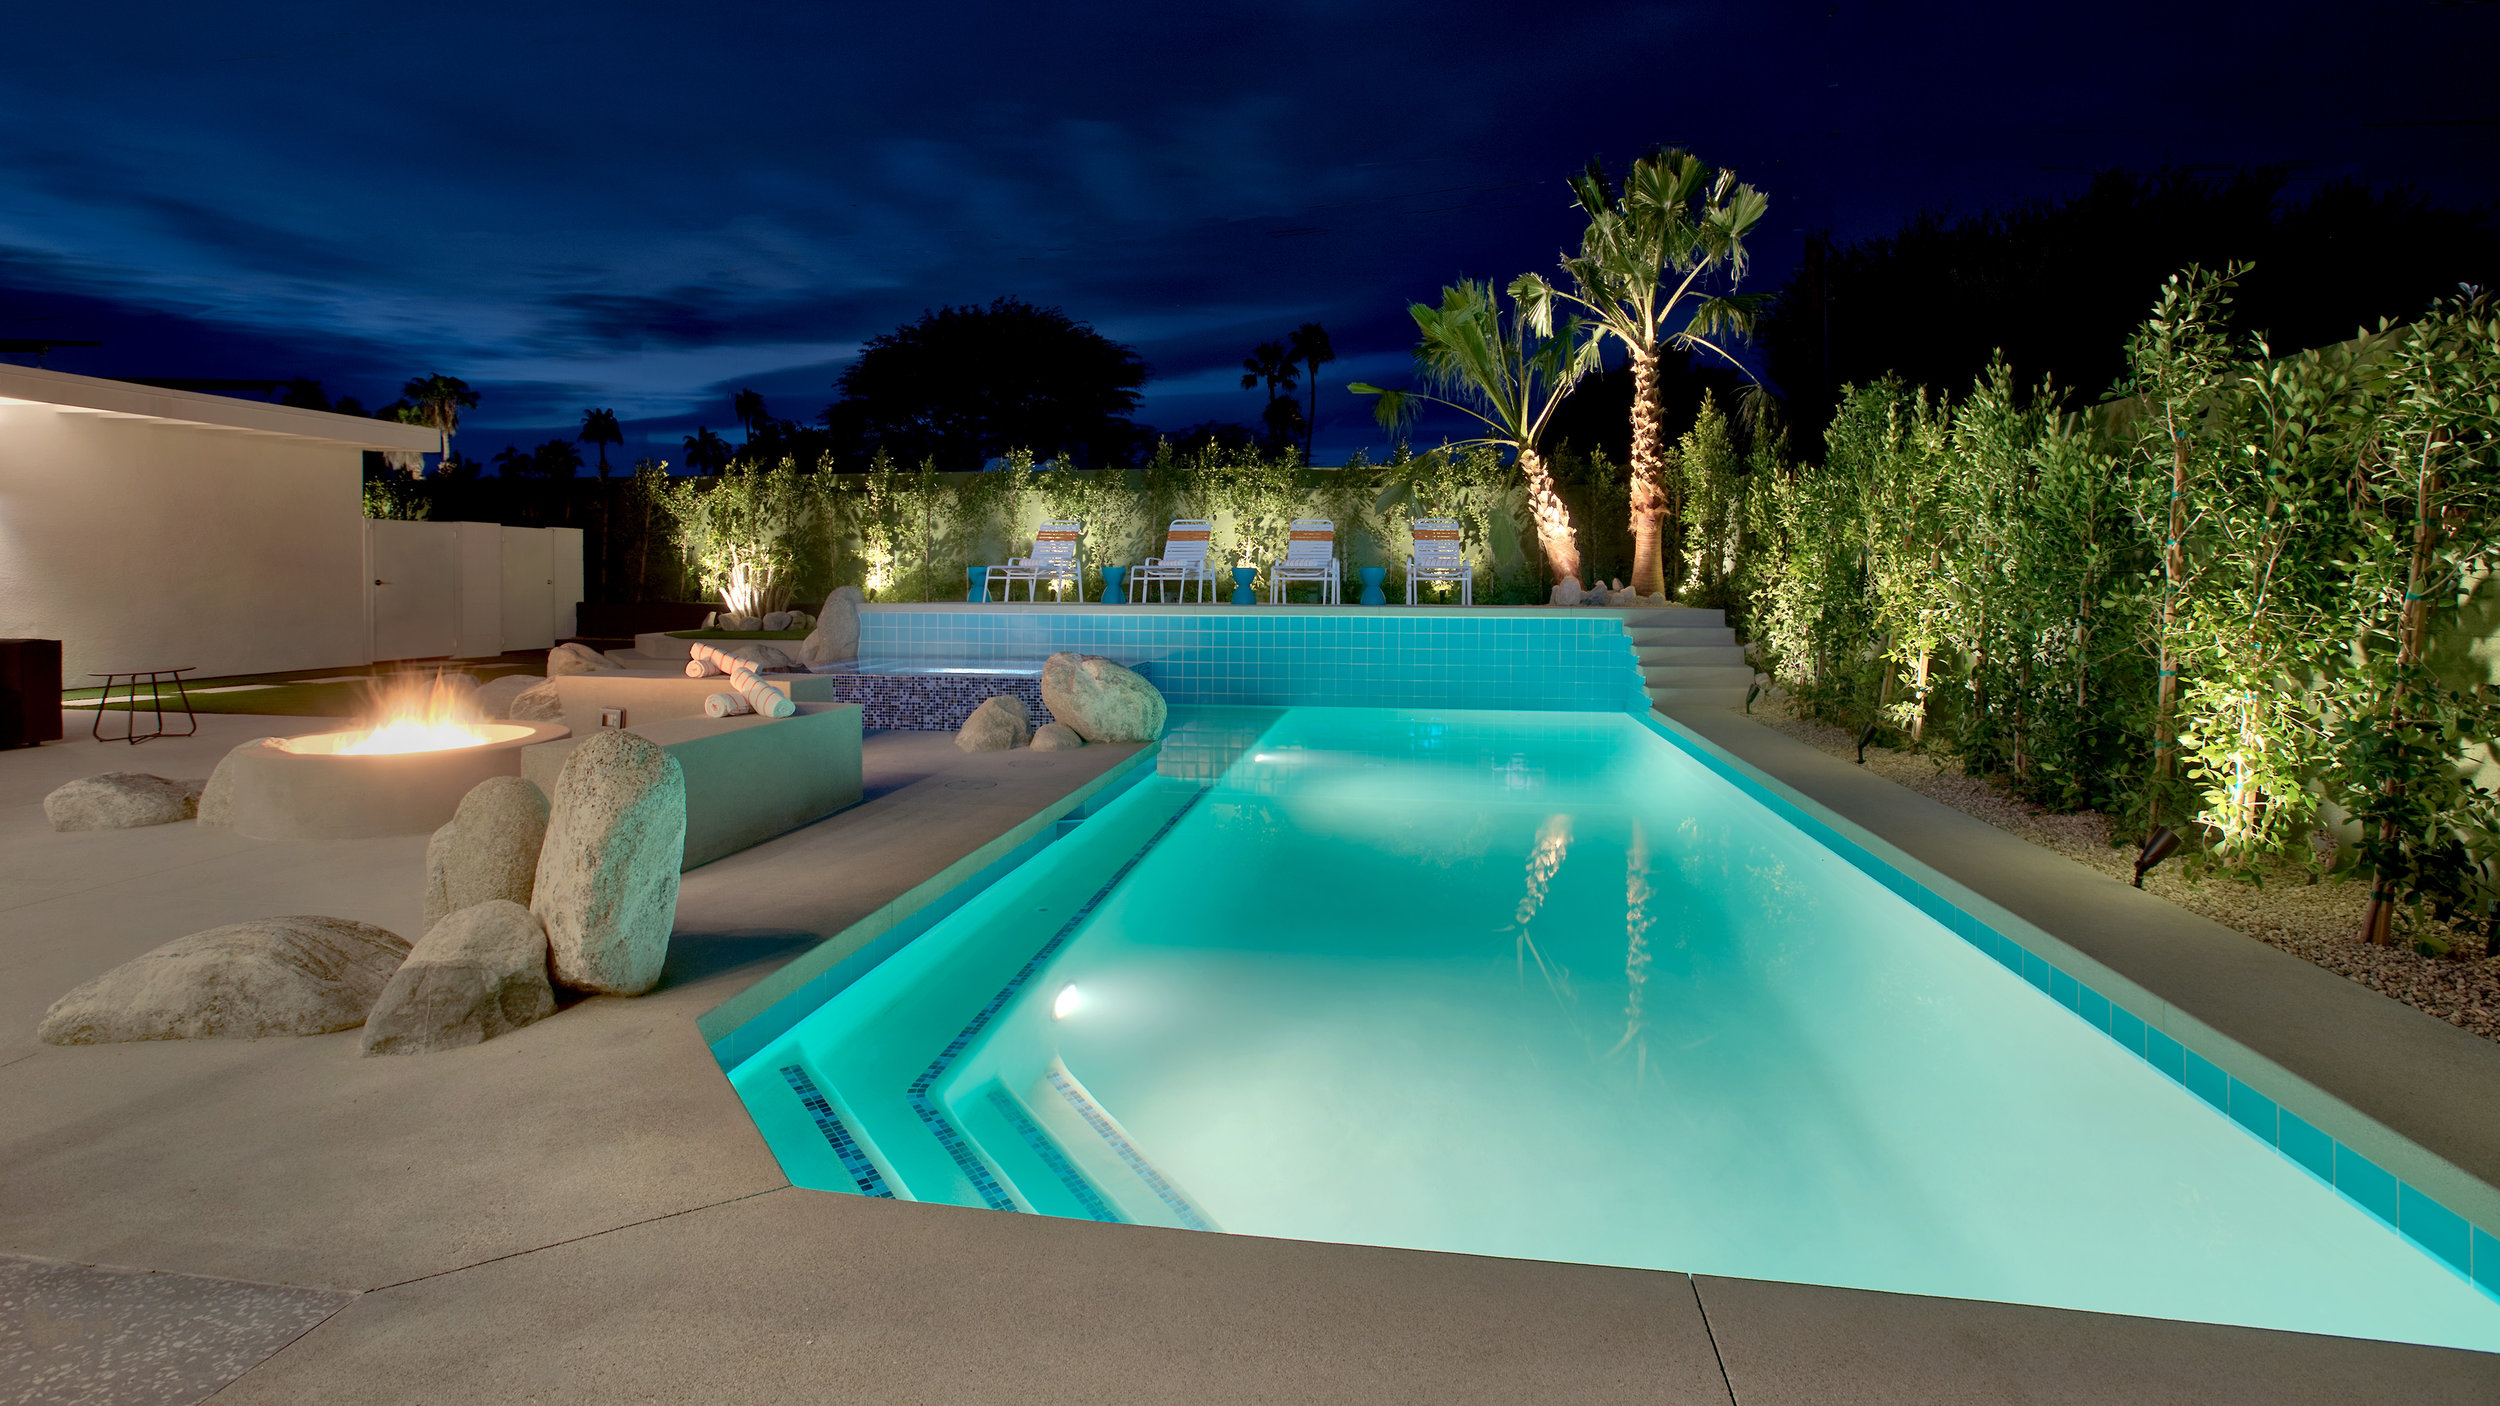 New salt-water pool with seating bench, tanning shelf and spa.